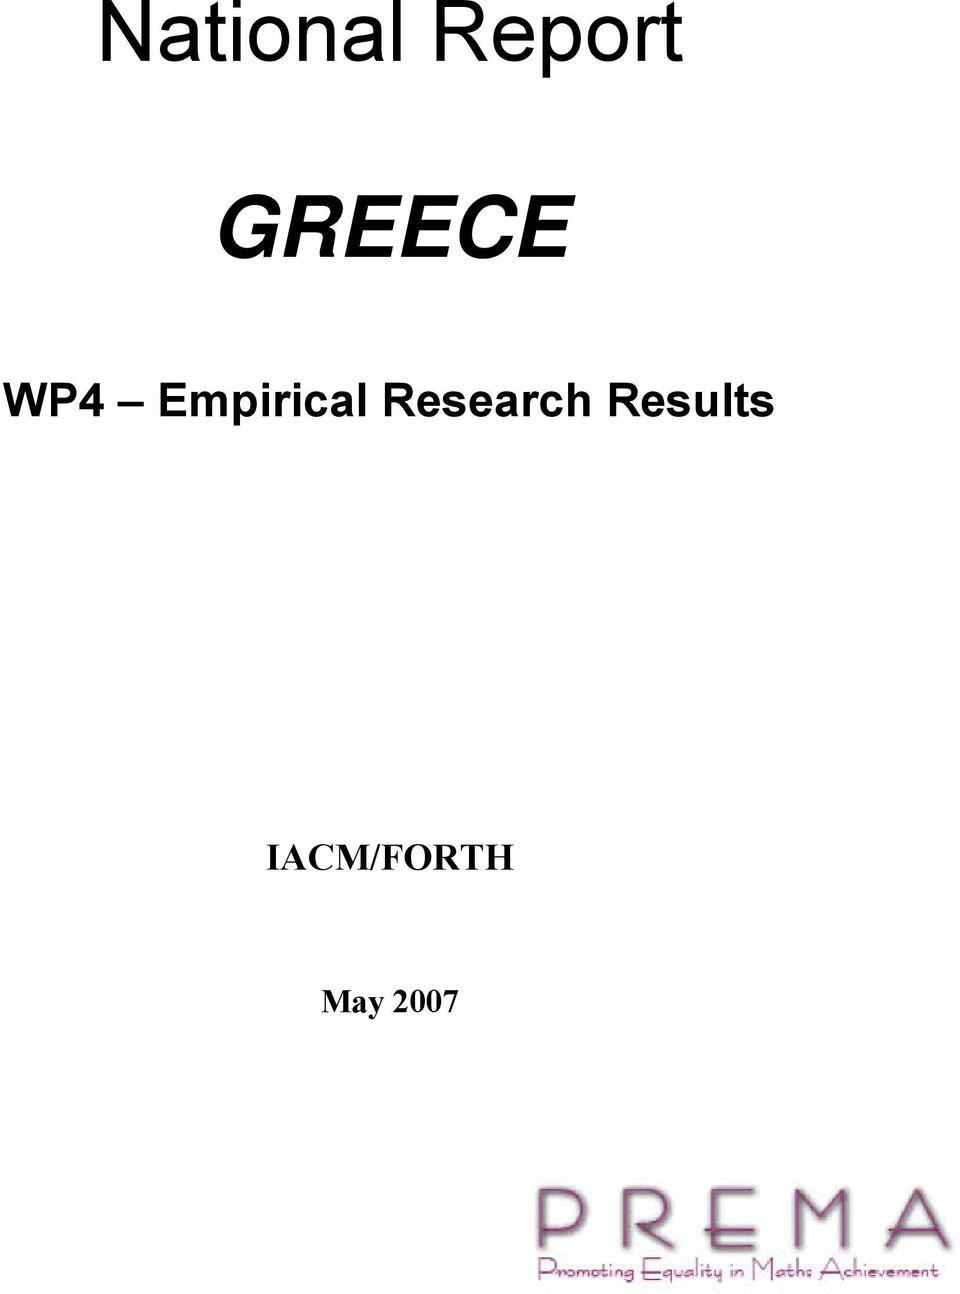 Empirical Research